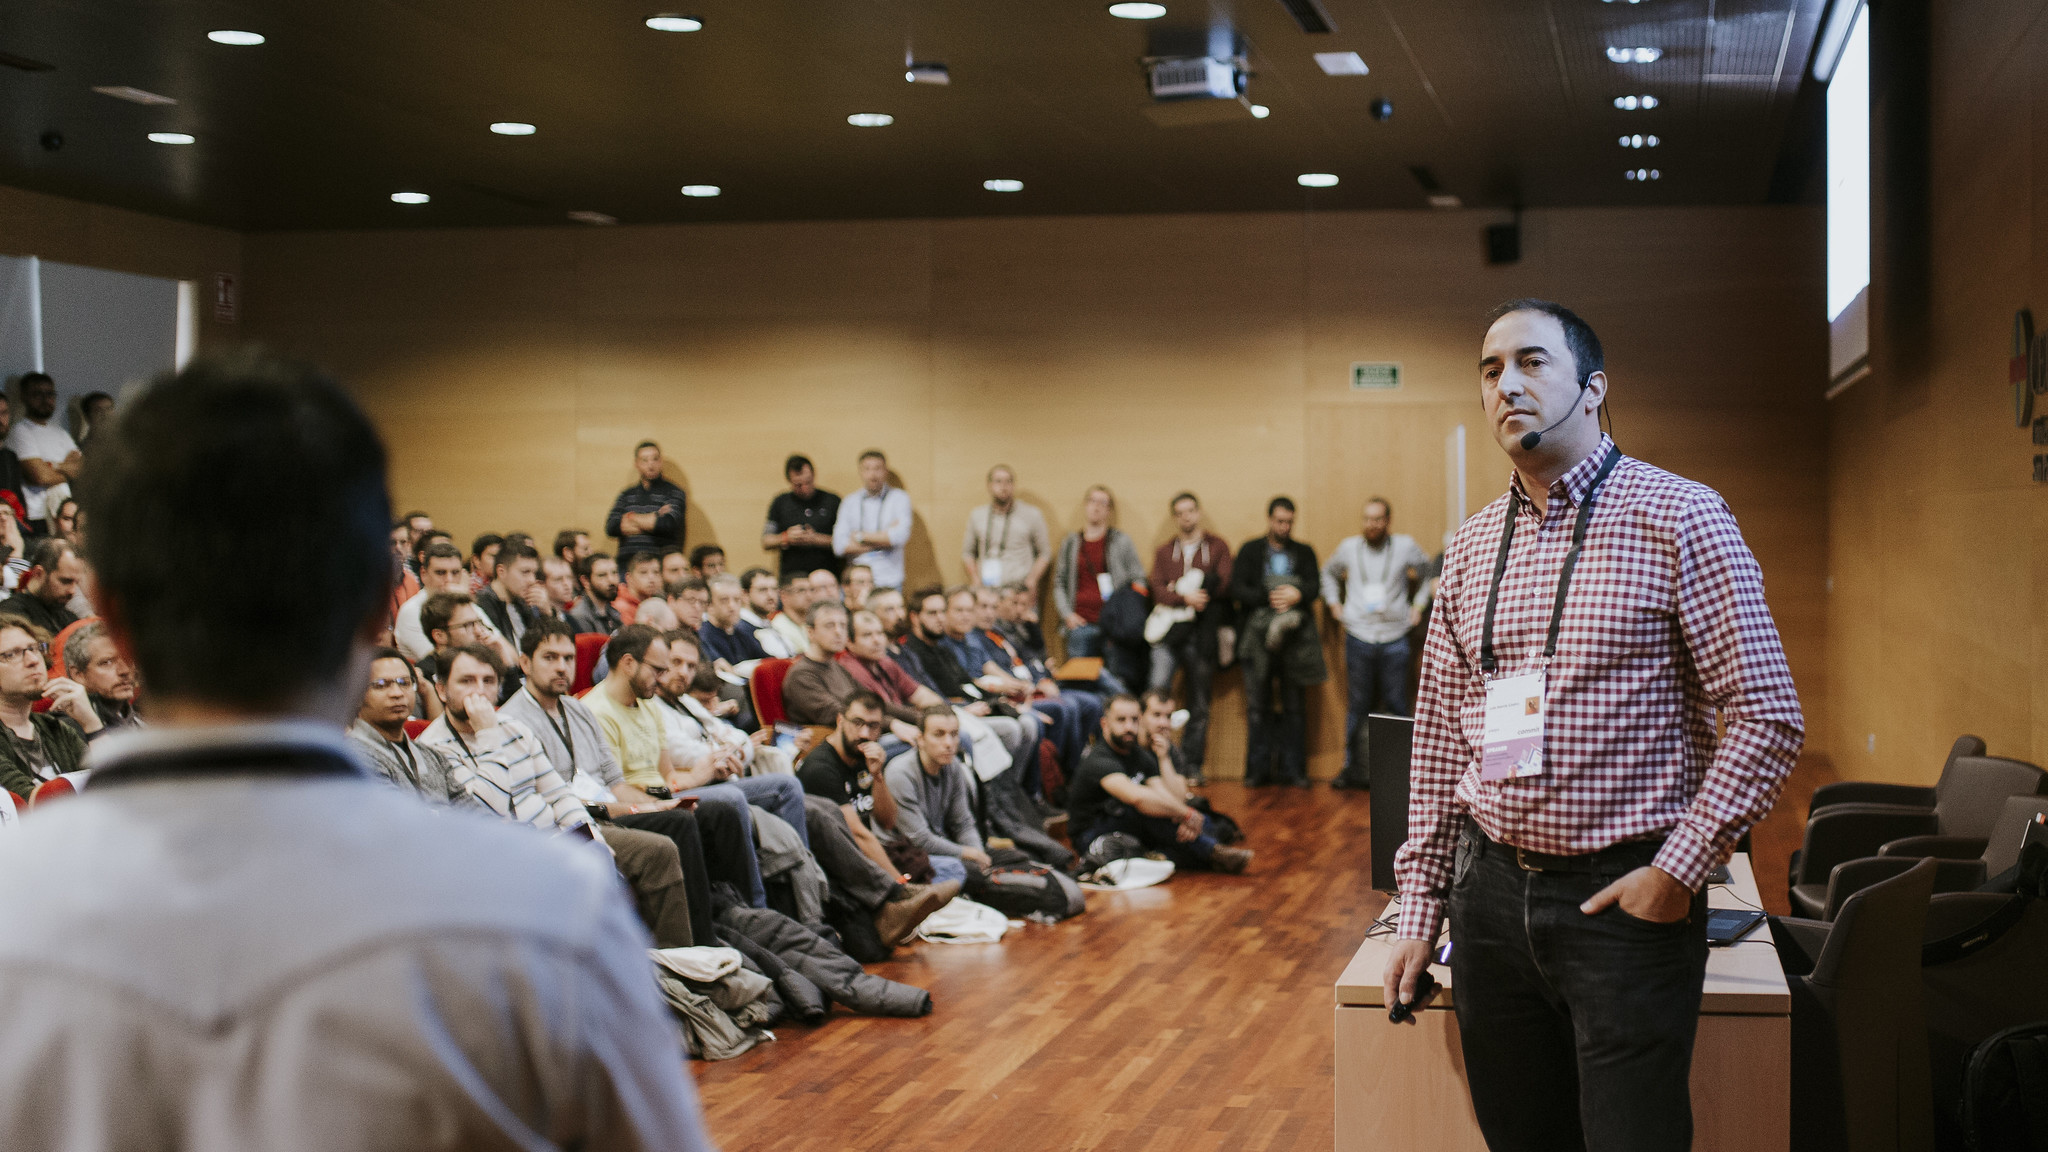 Thats me (interested in what Pablo says) at Commit Conf 2019